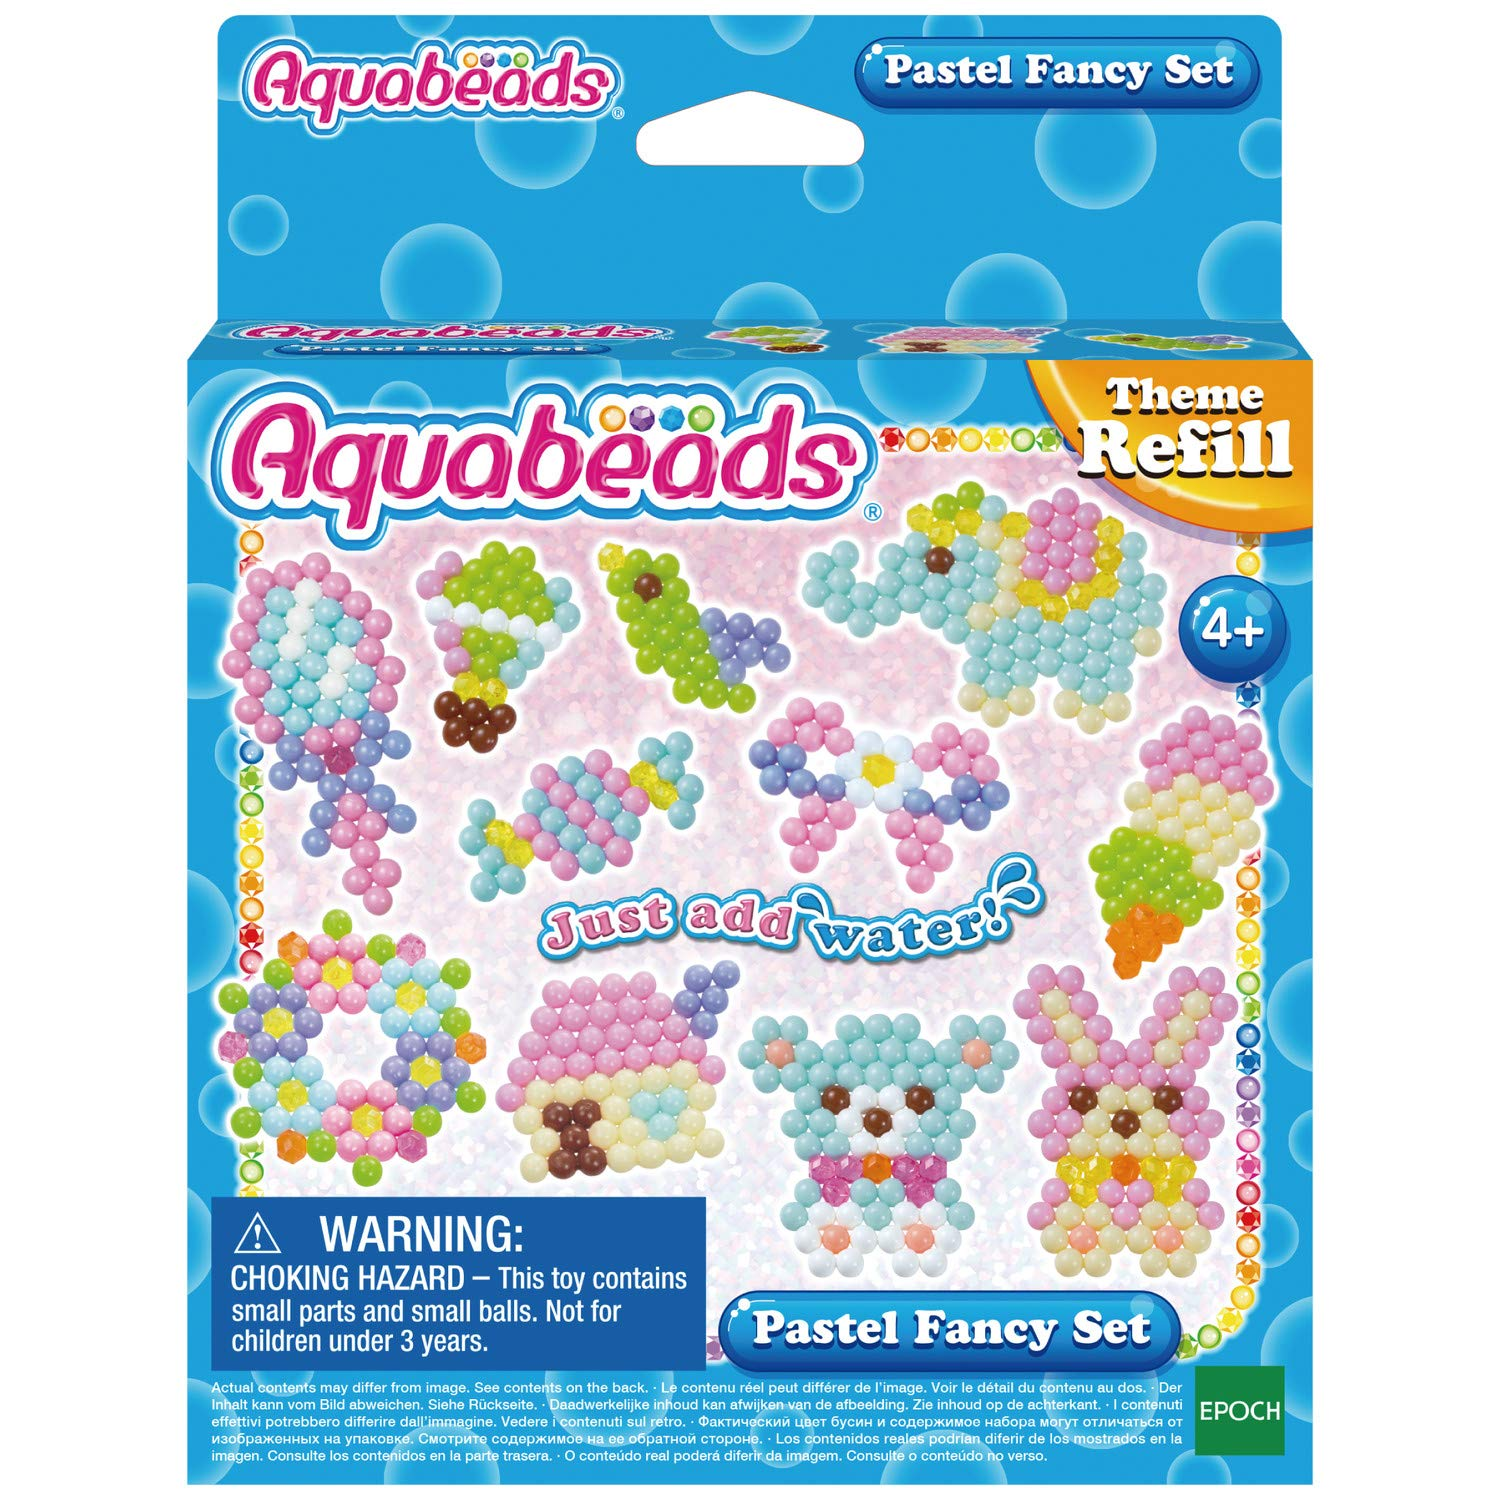 Aquabeads 31361 Pastel Fancy Set Multi-Coloured